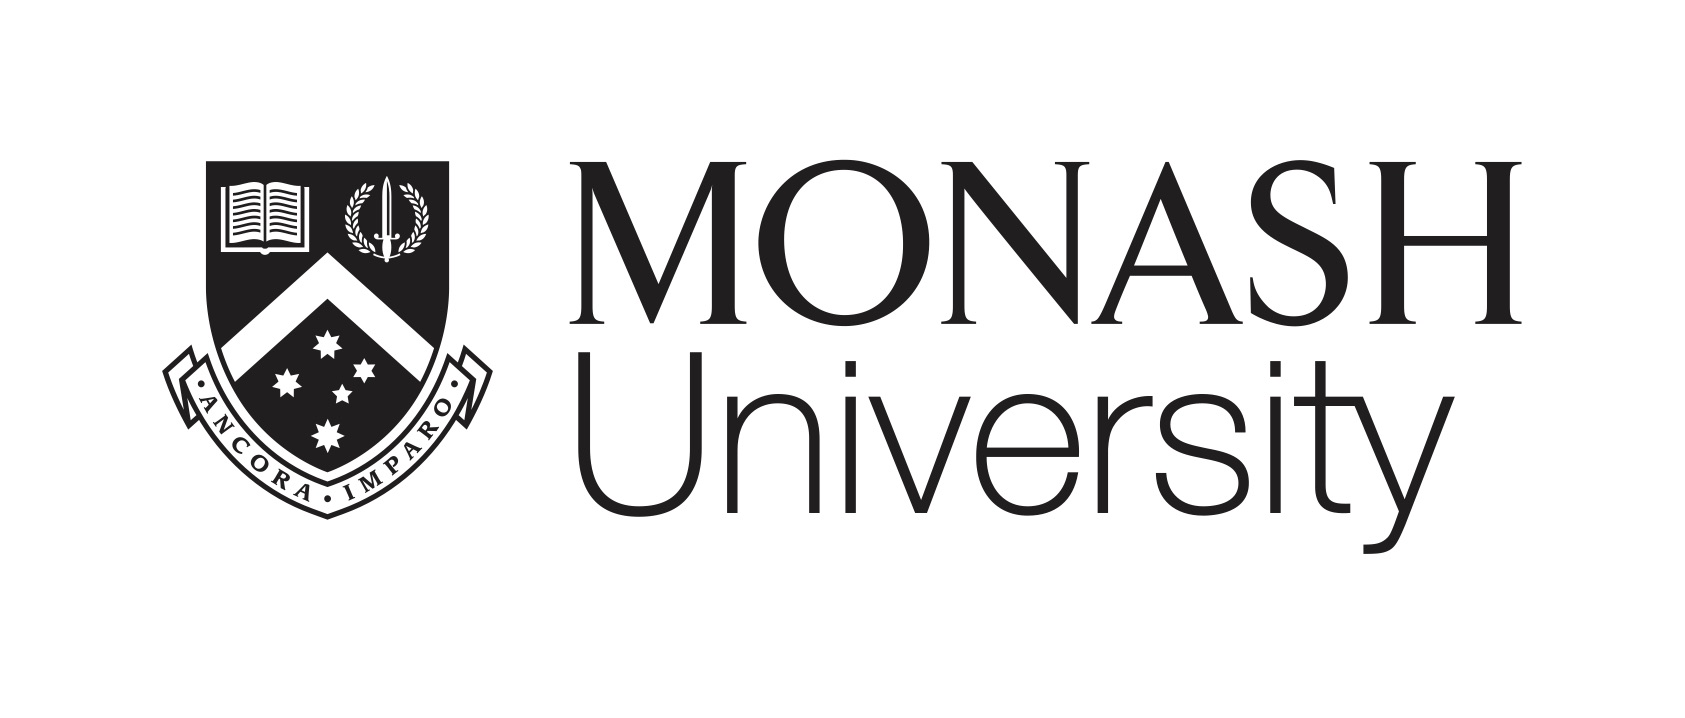 2016-Monash_2-Black_NEW_TO SEND.jpg